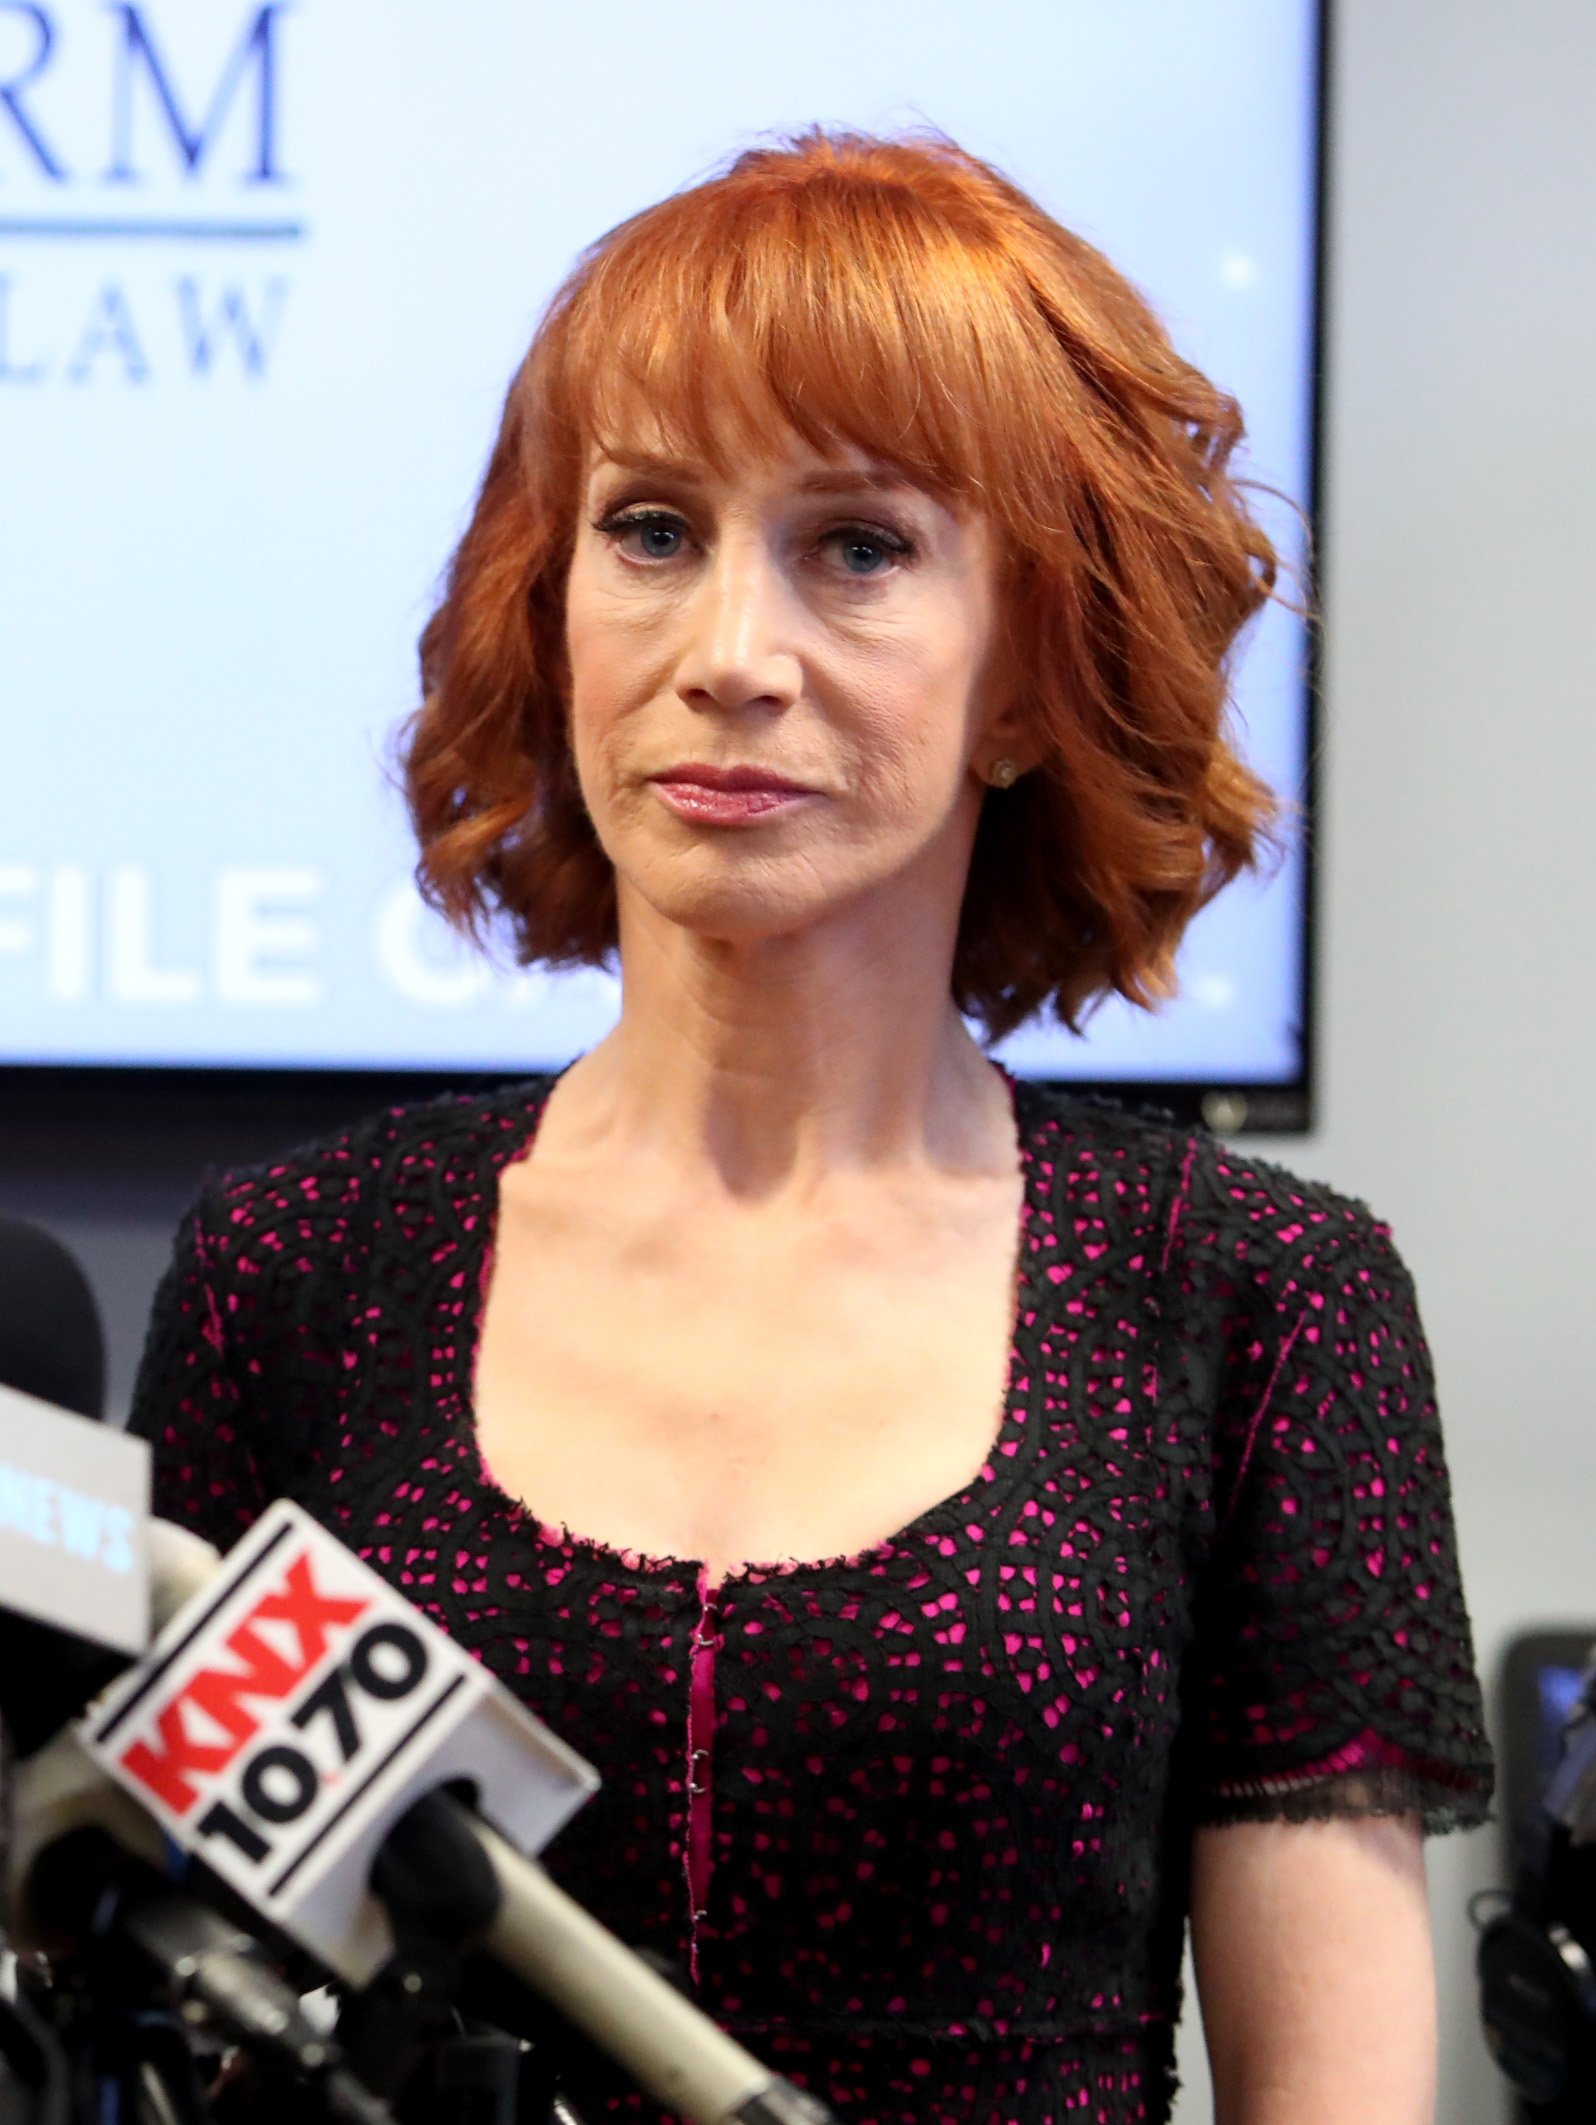 Kathy Griffin speas at a press conference at the Bloom Firm in Woodland Hills, California on June 2, 2017 | Photo: Getty Images